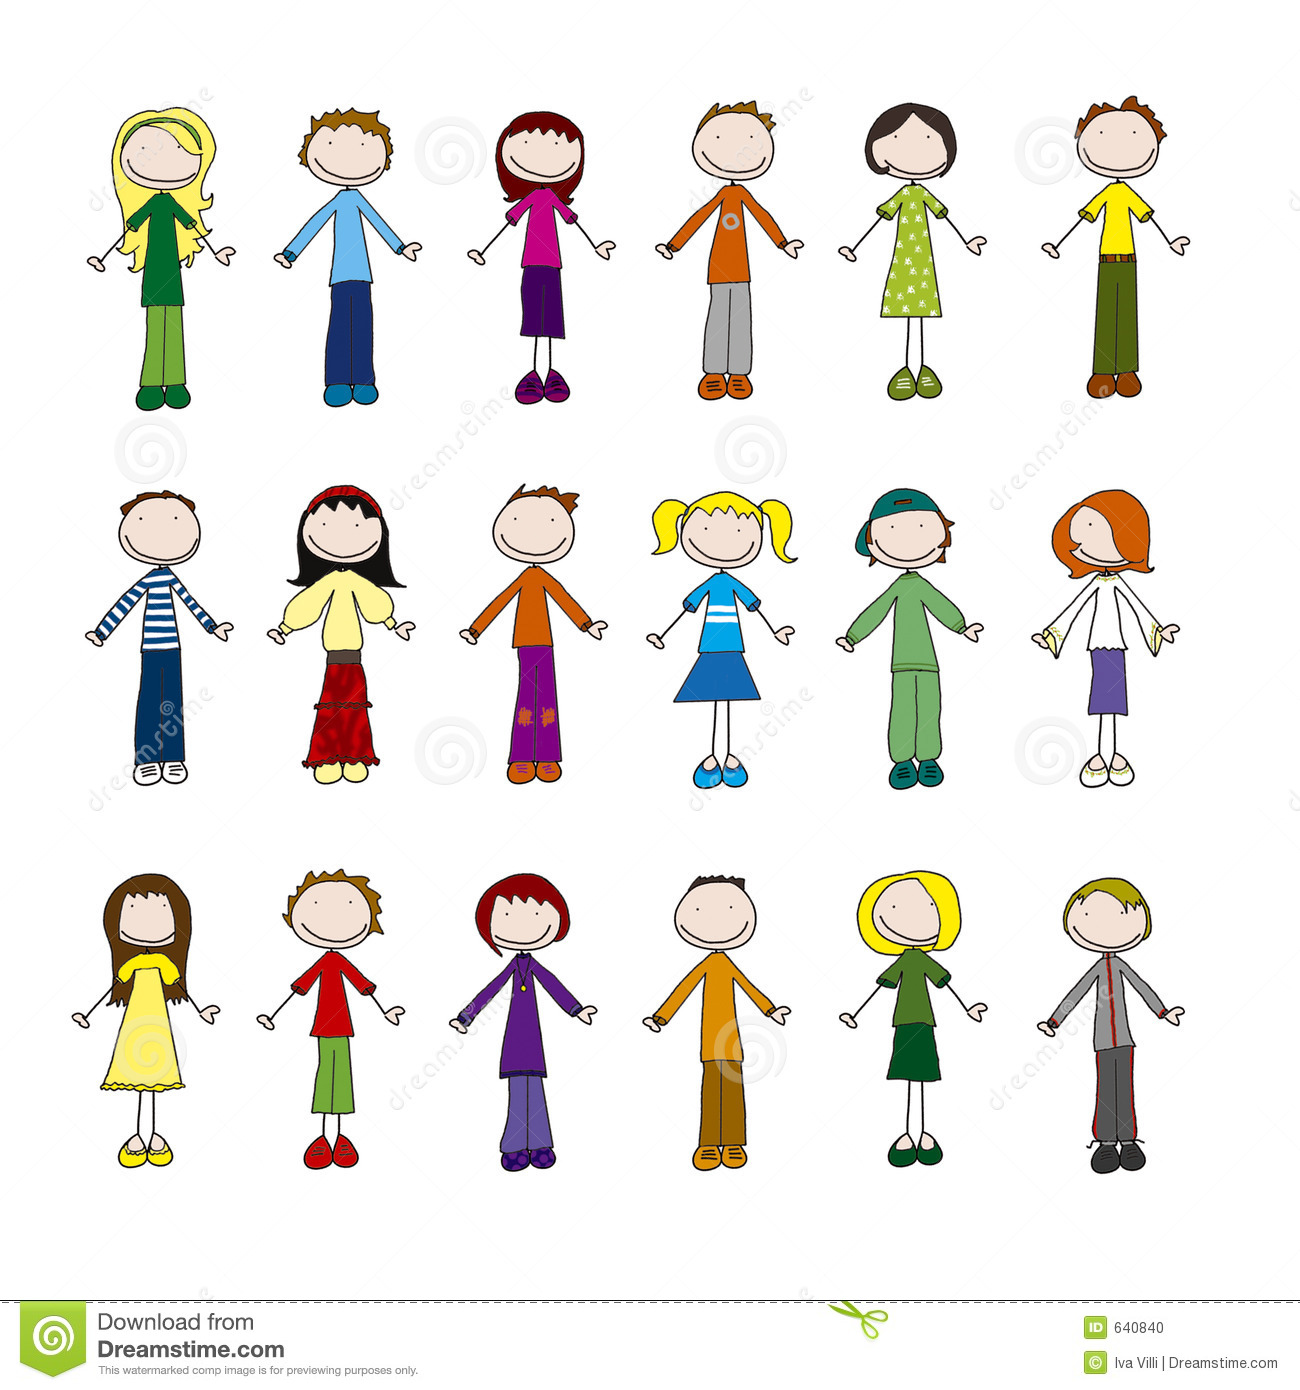 More similar stock images of ` Little people `